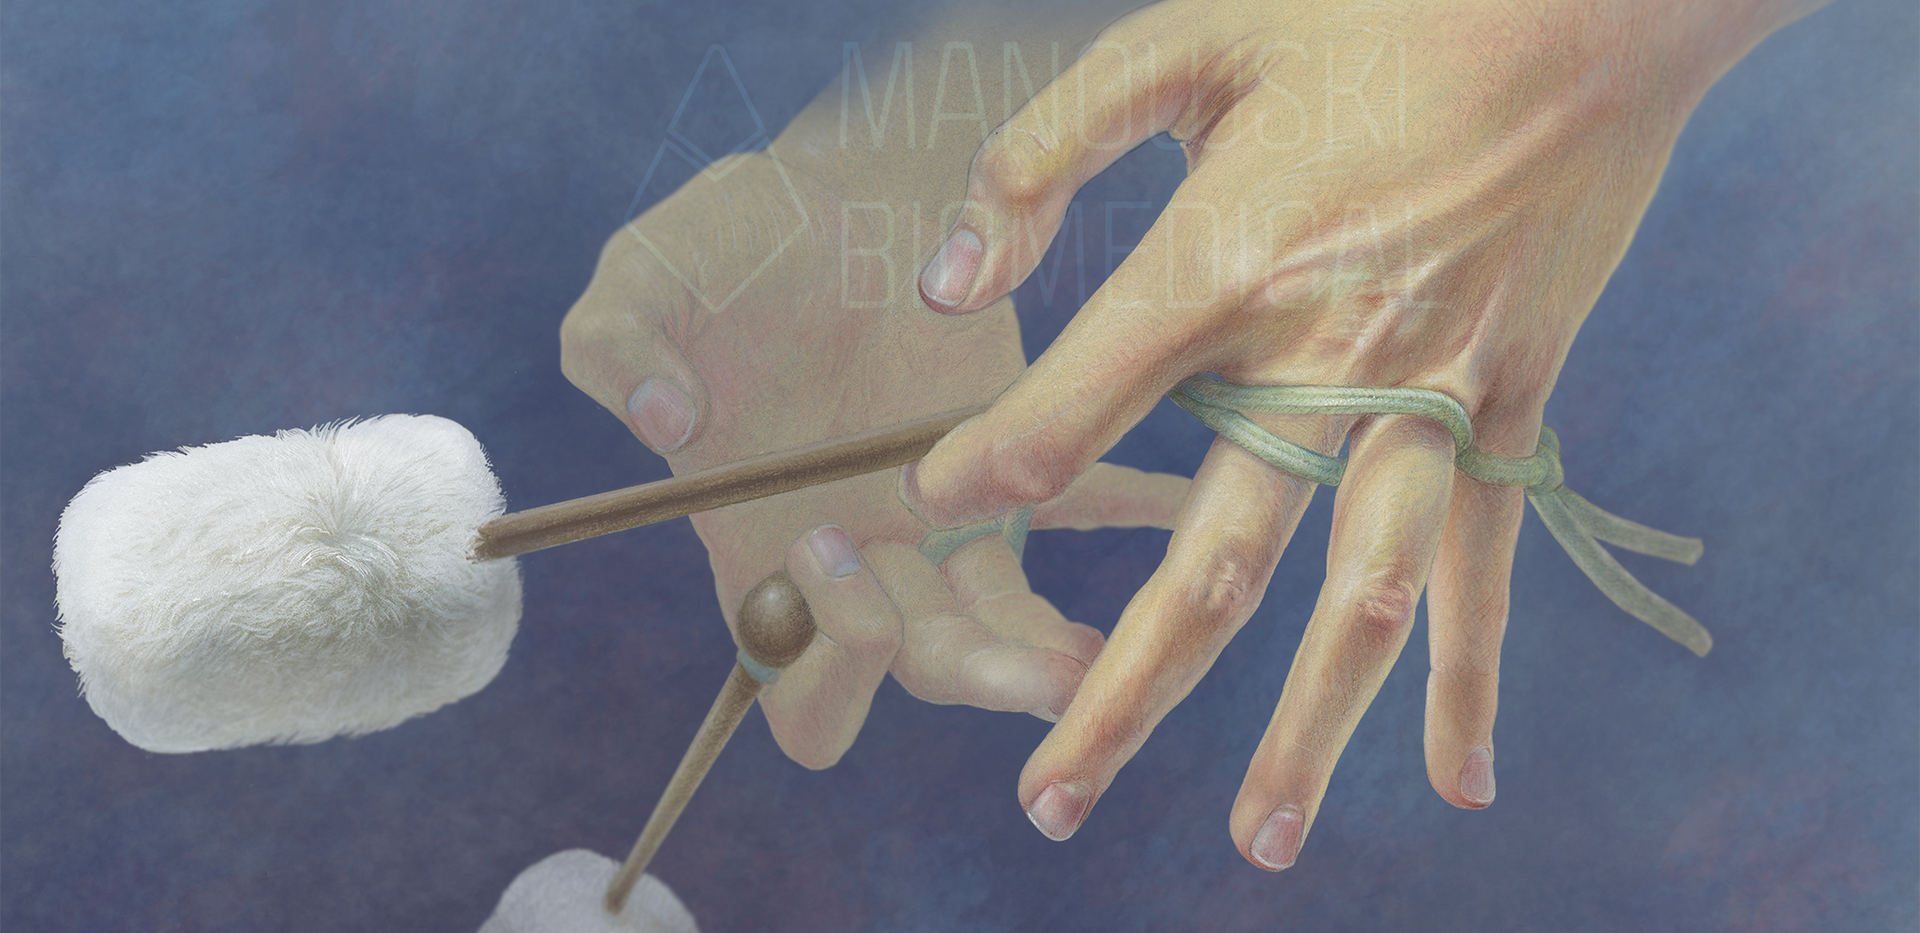 Hands with Tenor Drum Mallets